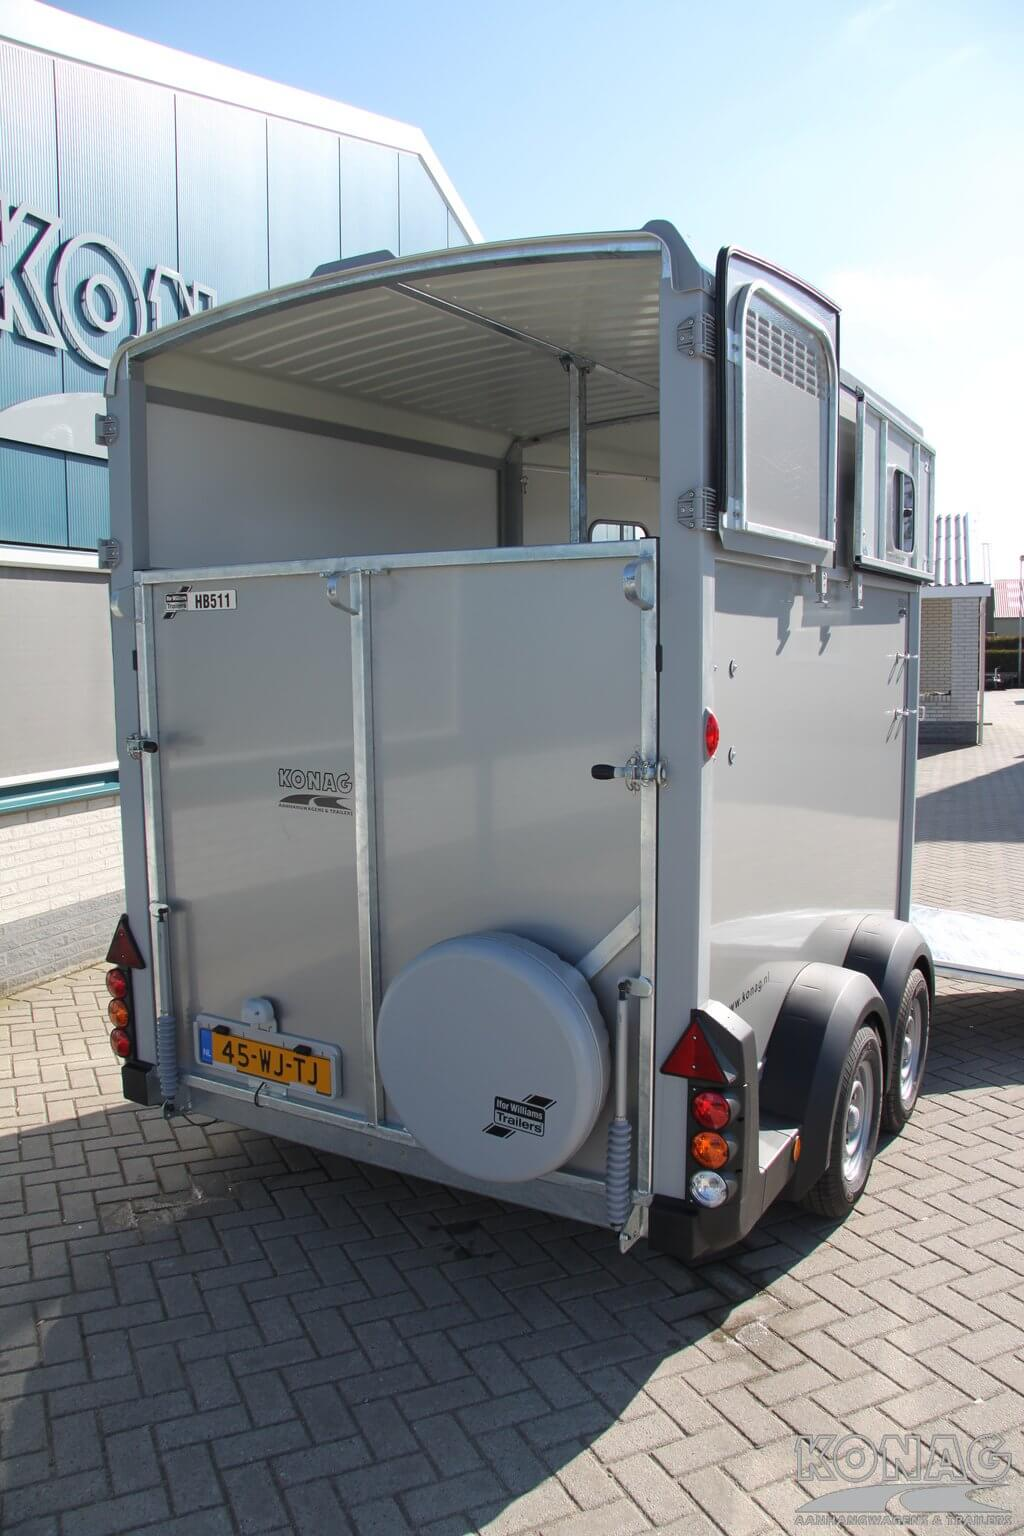 Ifor Williams HB511 paardentrailer achterzijde